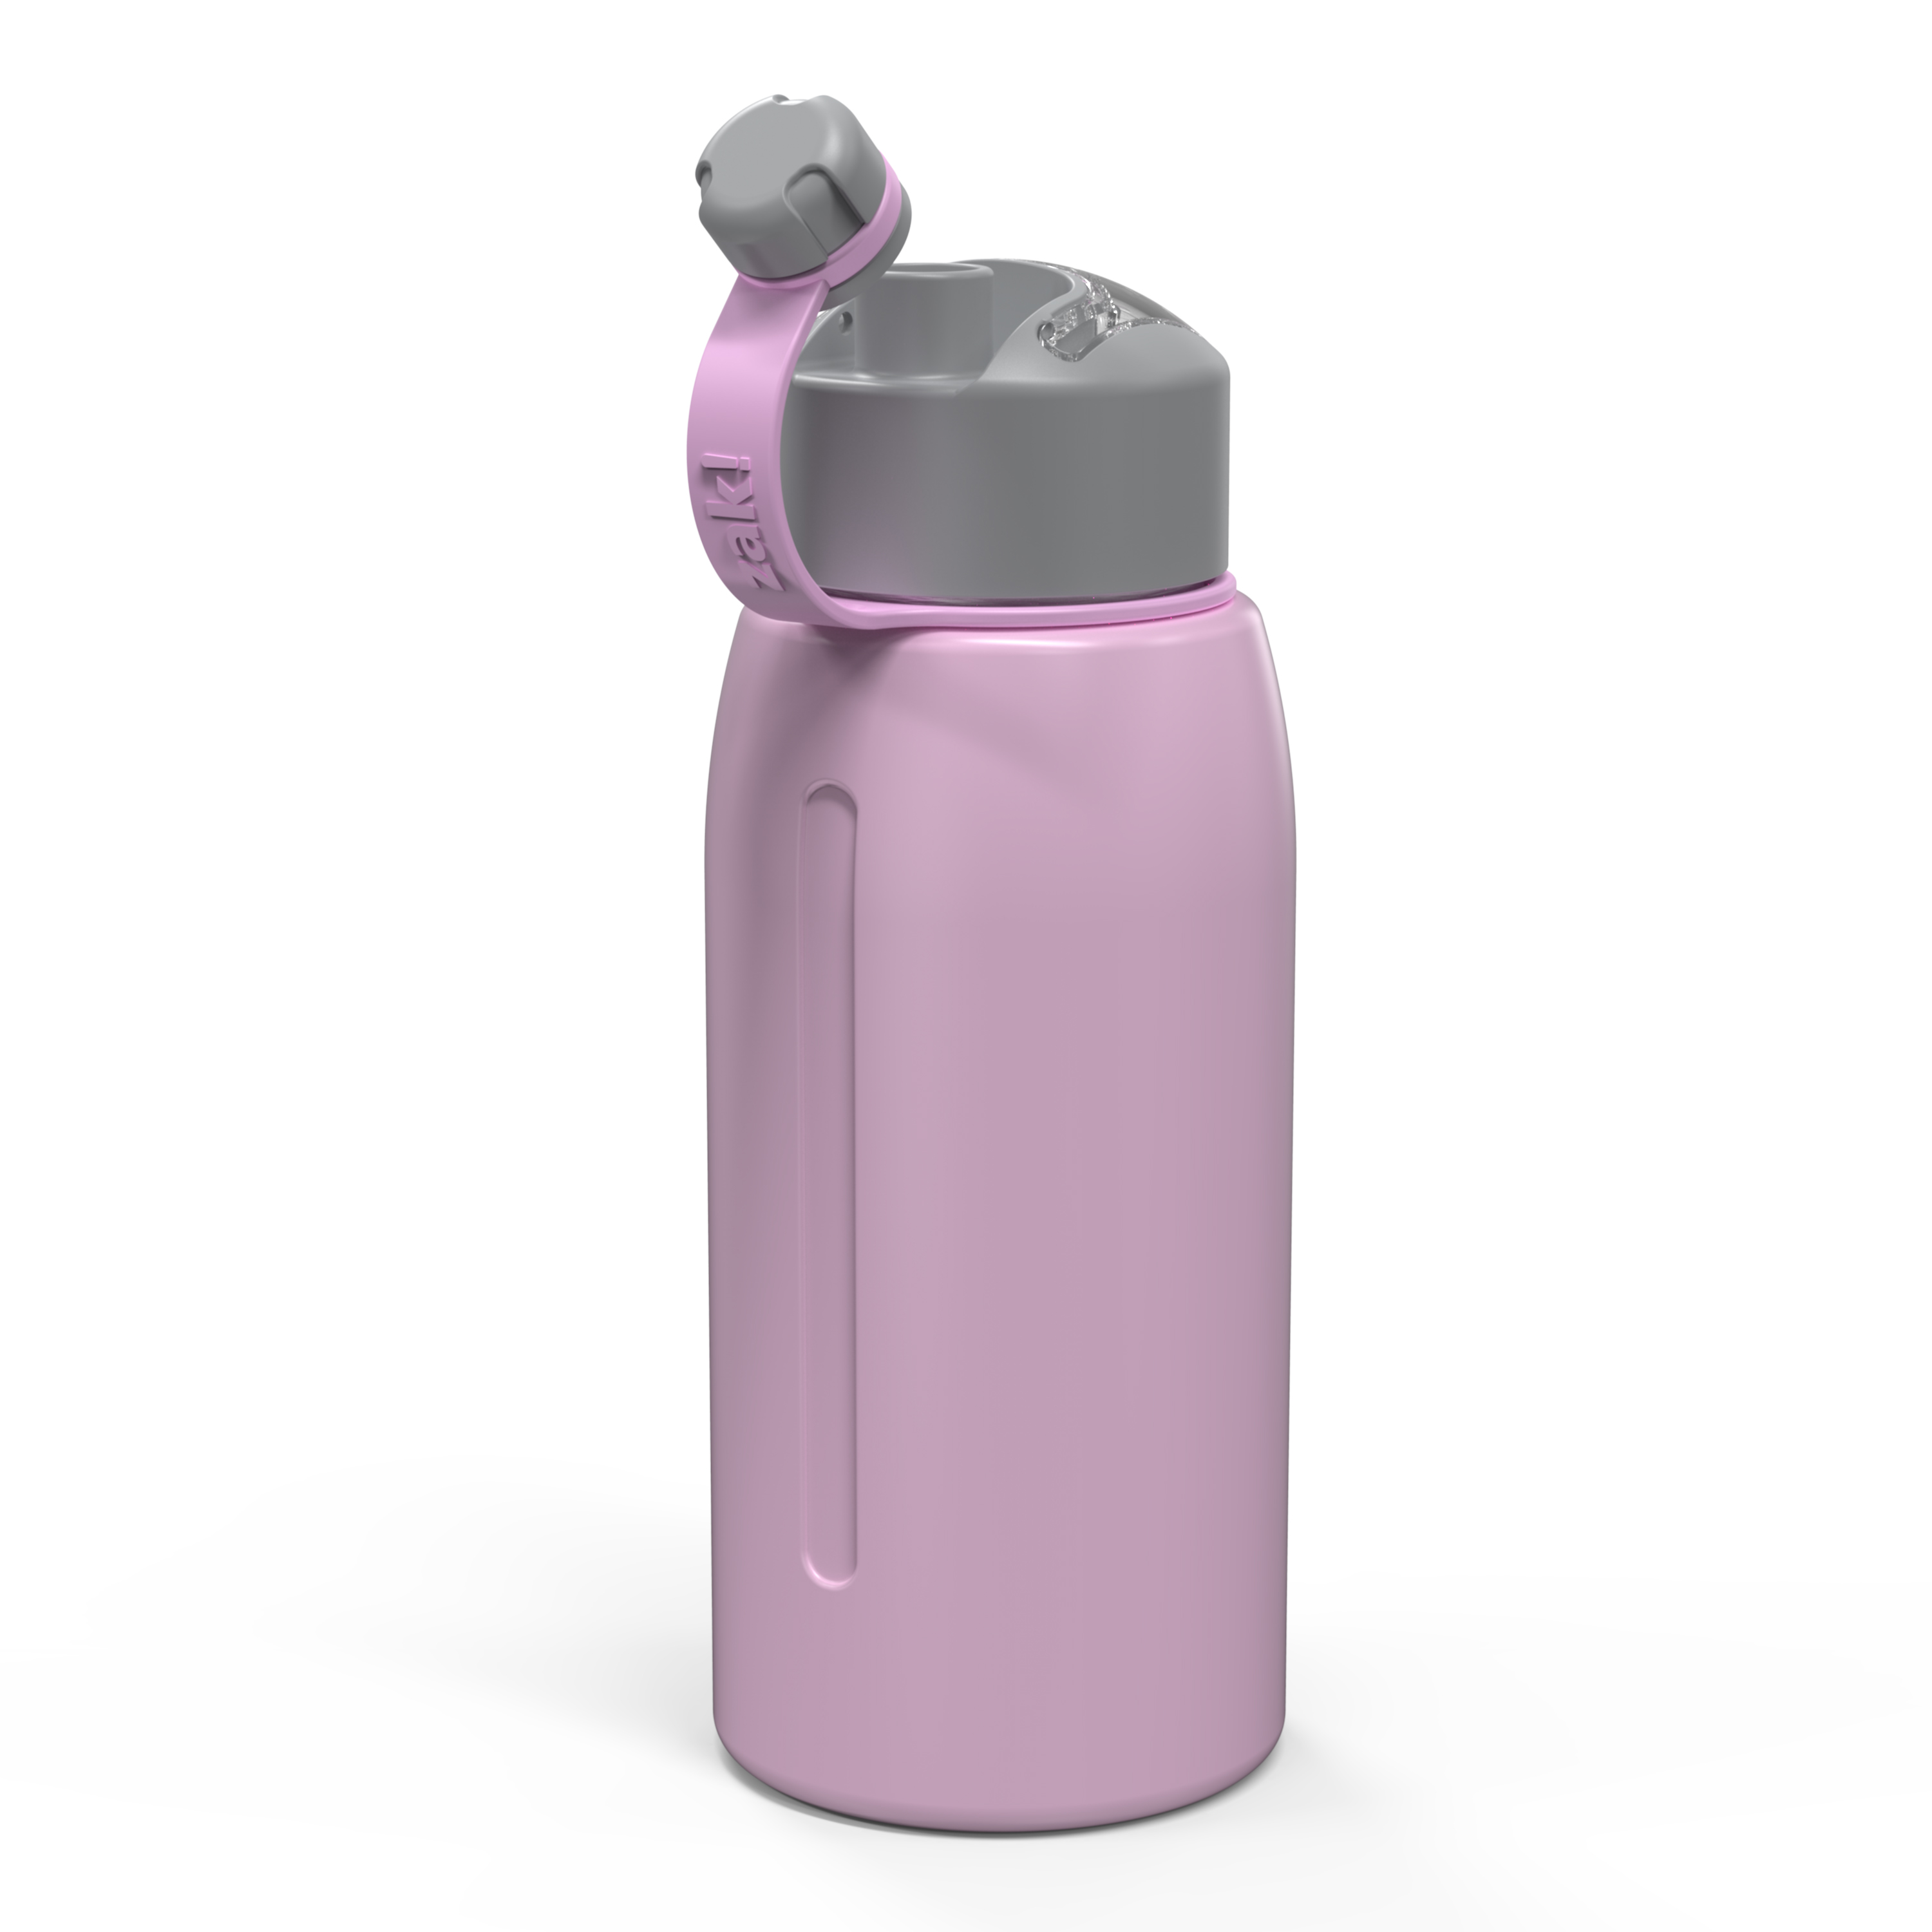 Genesis 32 ounce Vacuum Insulated Stainless Steel Tumbler, Lilac slideshow image 6